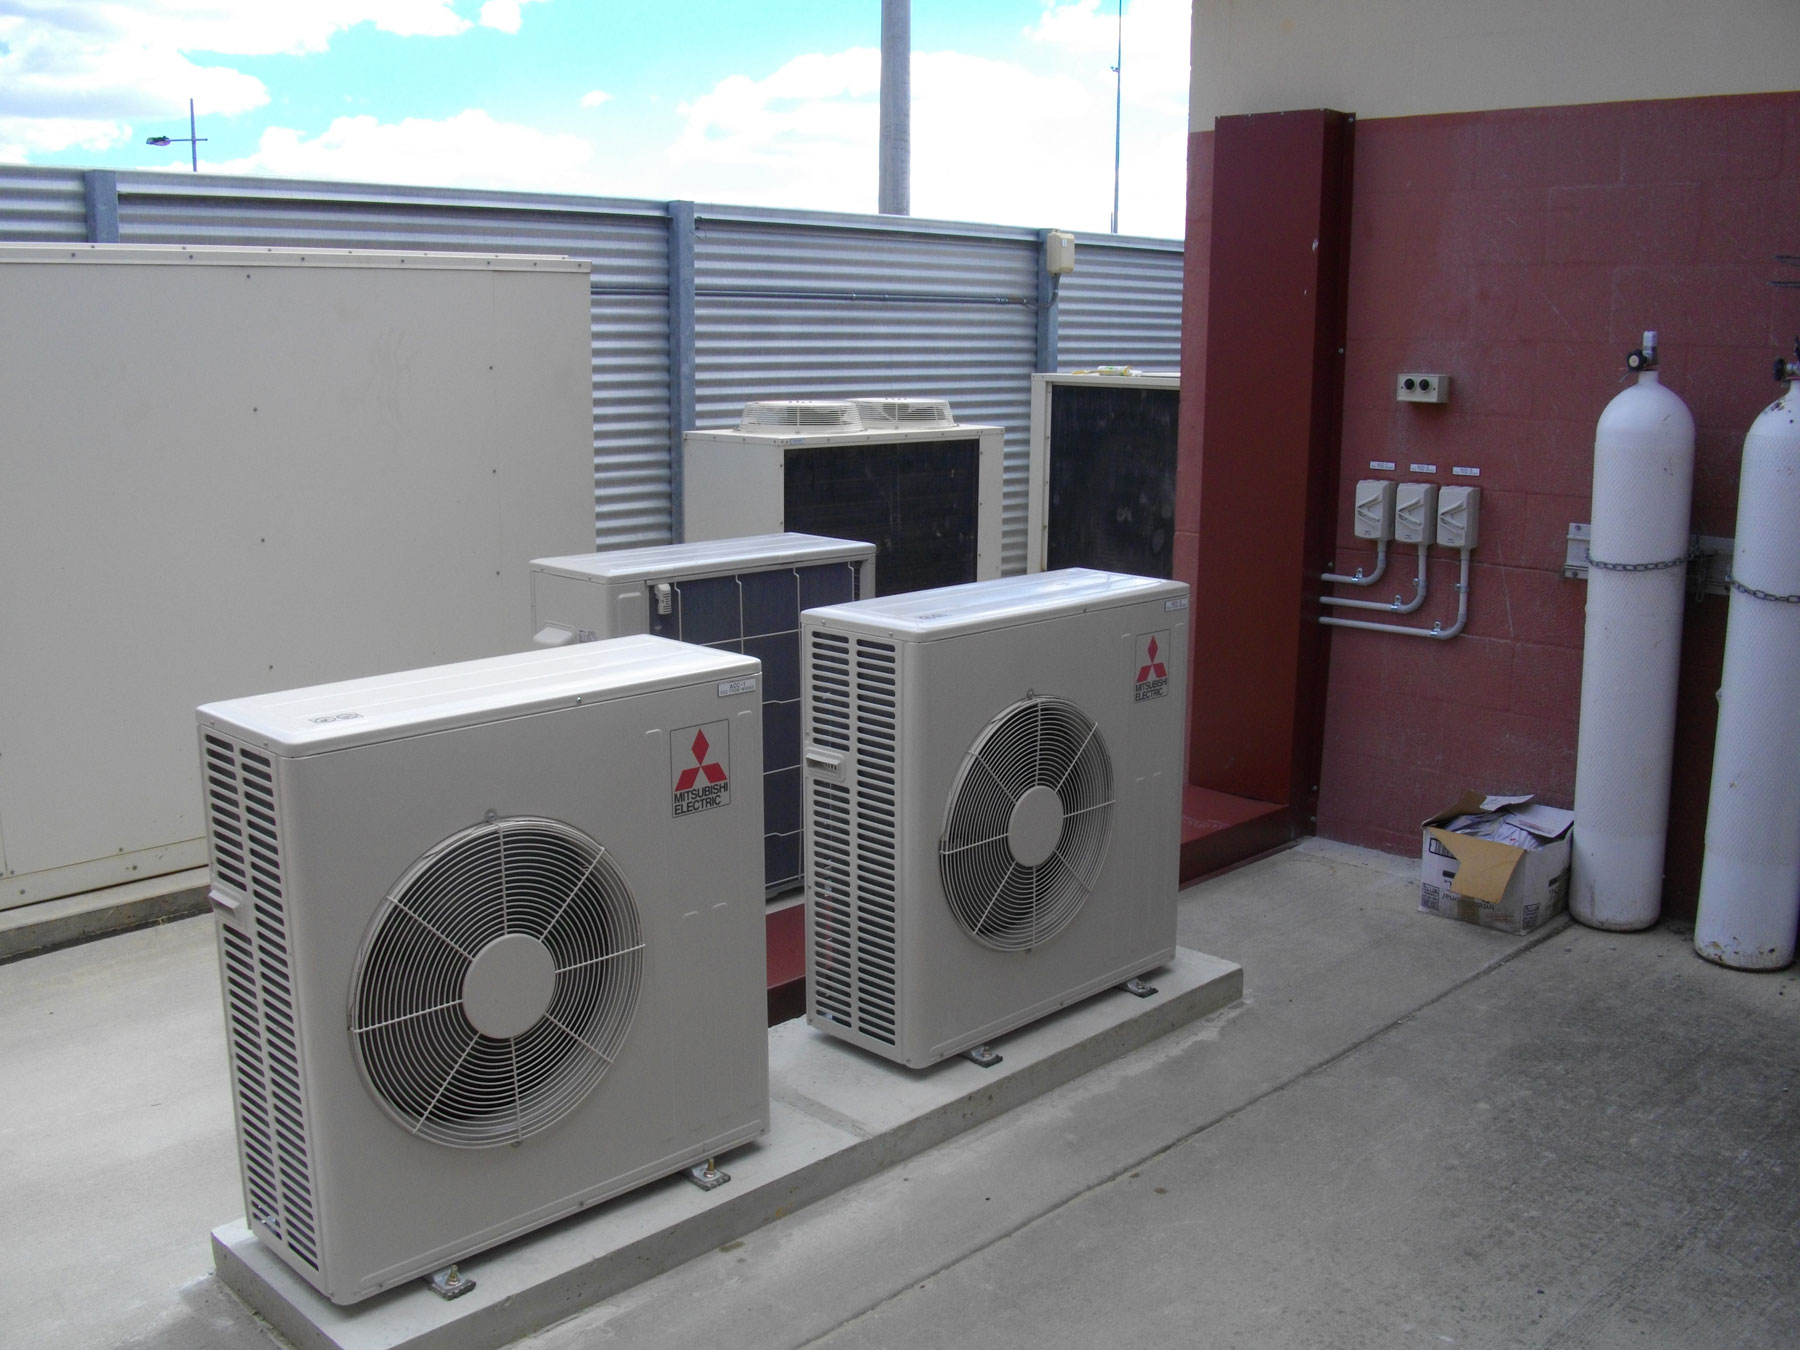 air conditioning units sitting side by side